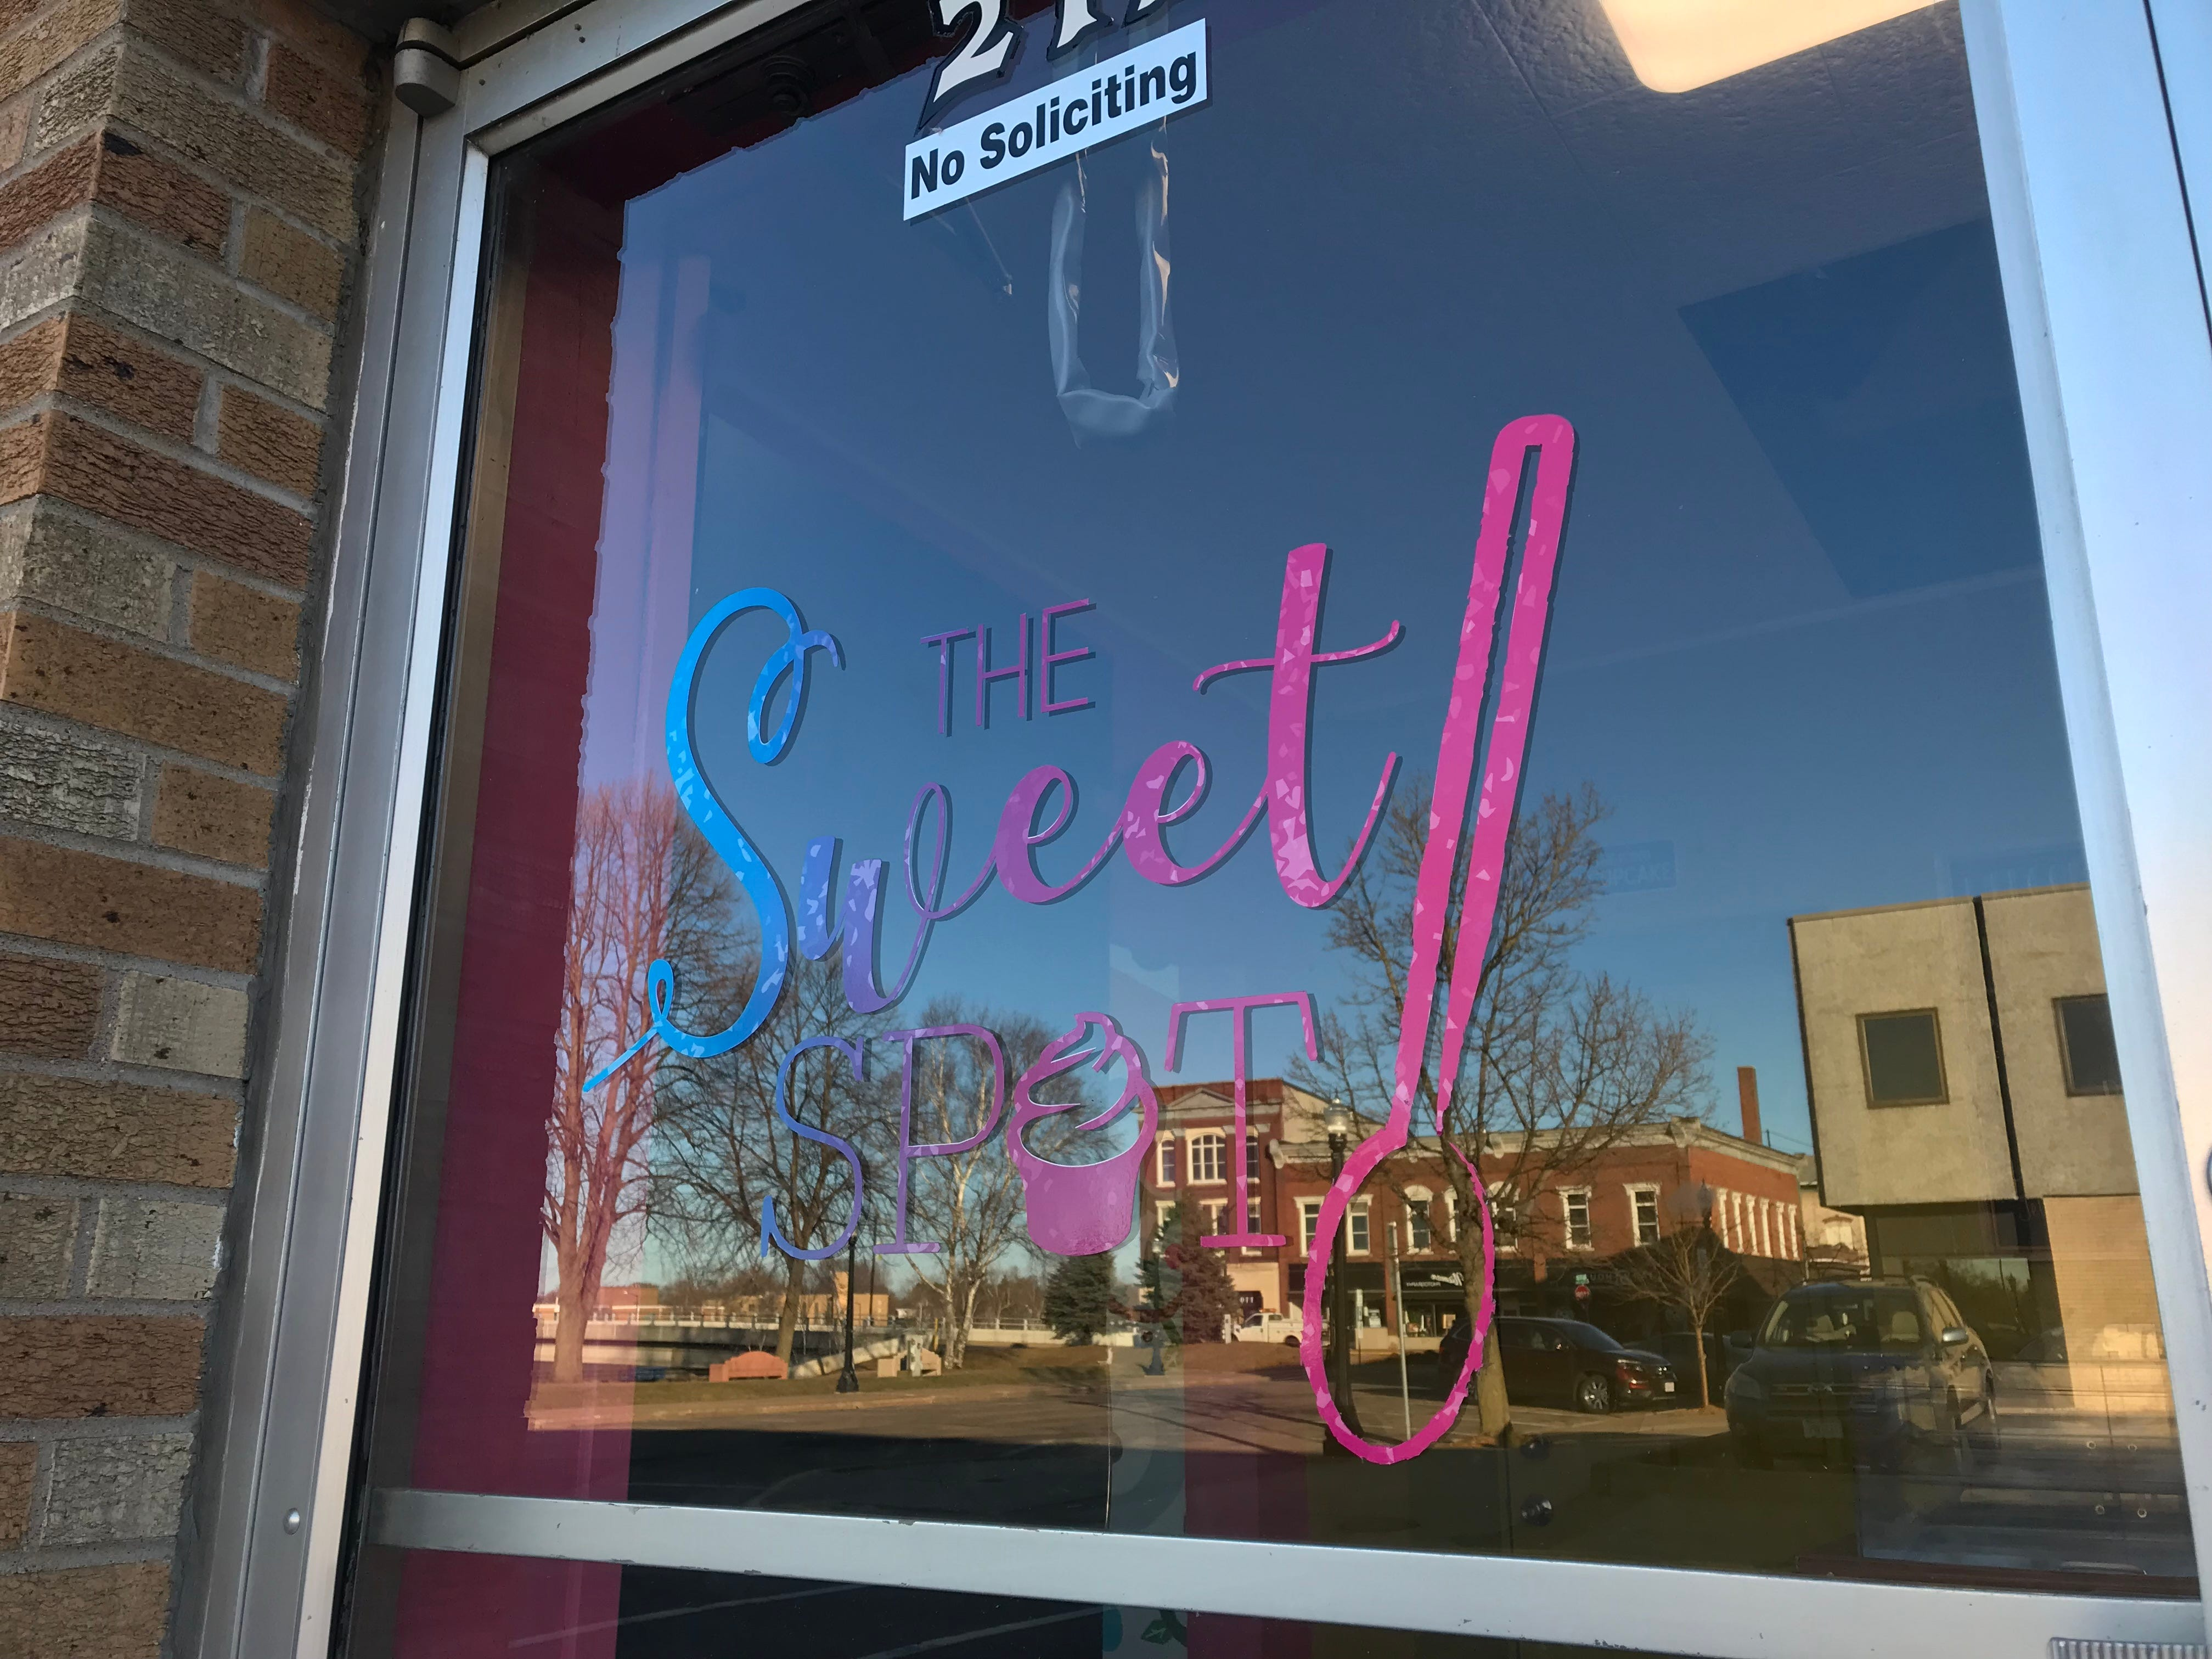 You can find The Sweet Spot near Wood Trust Bank in Wisconsin Rapids.